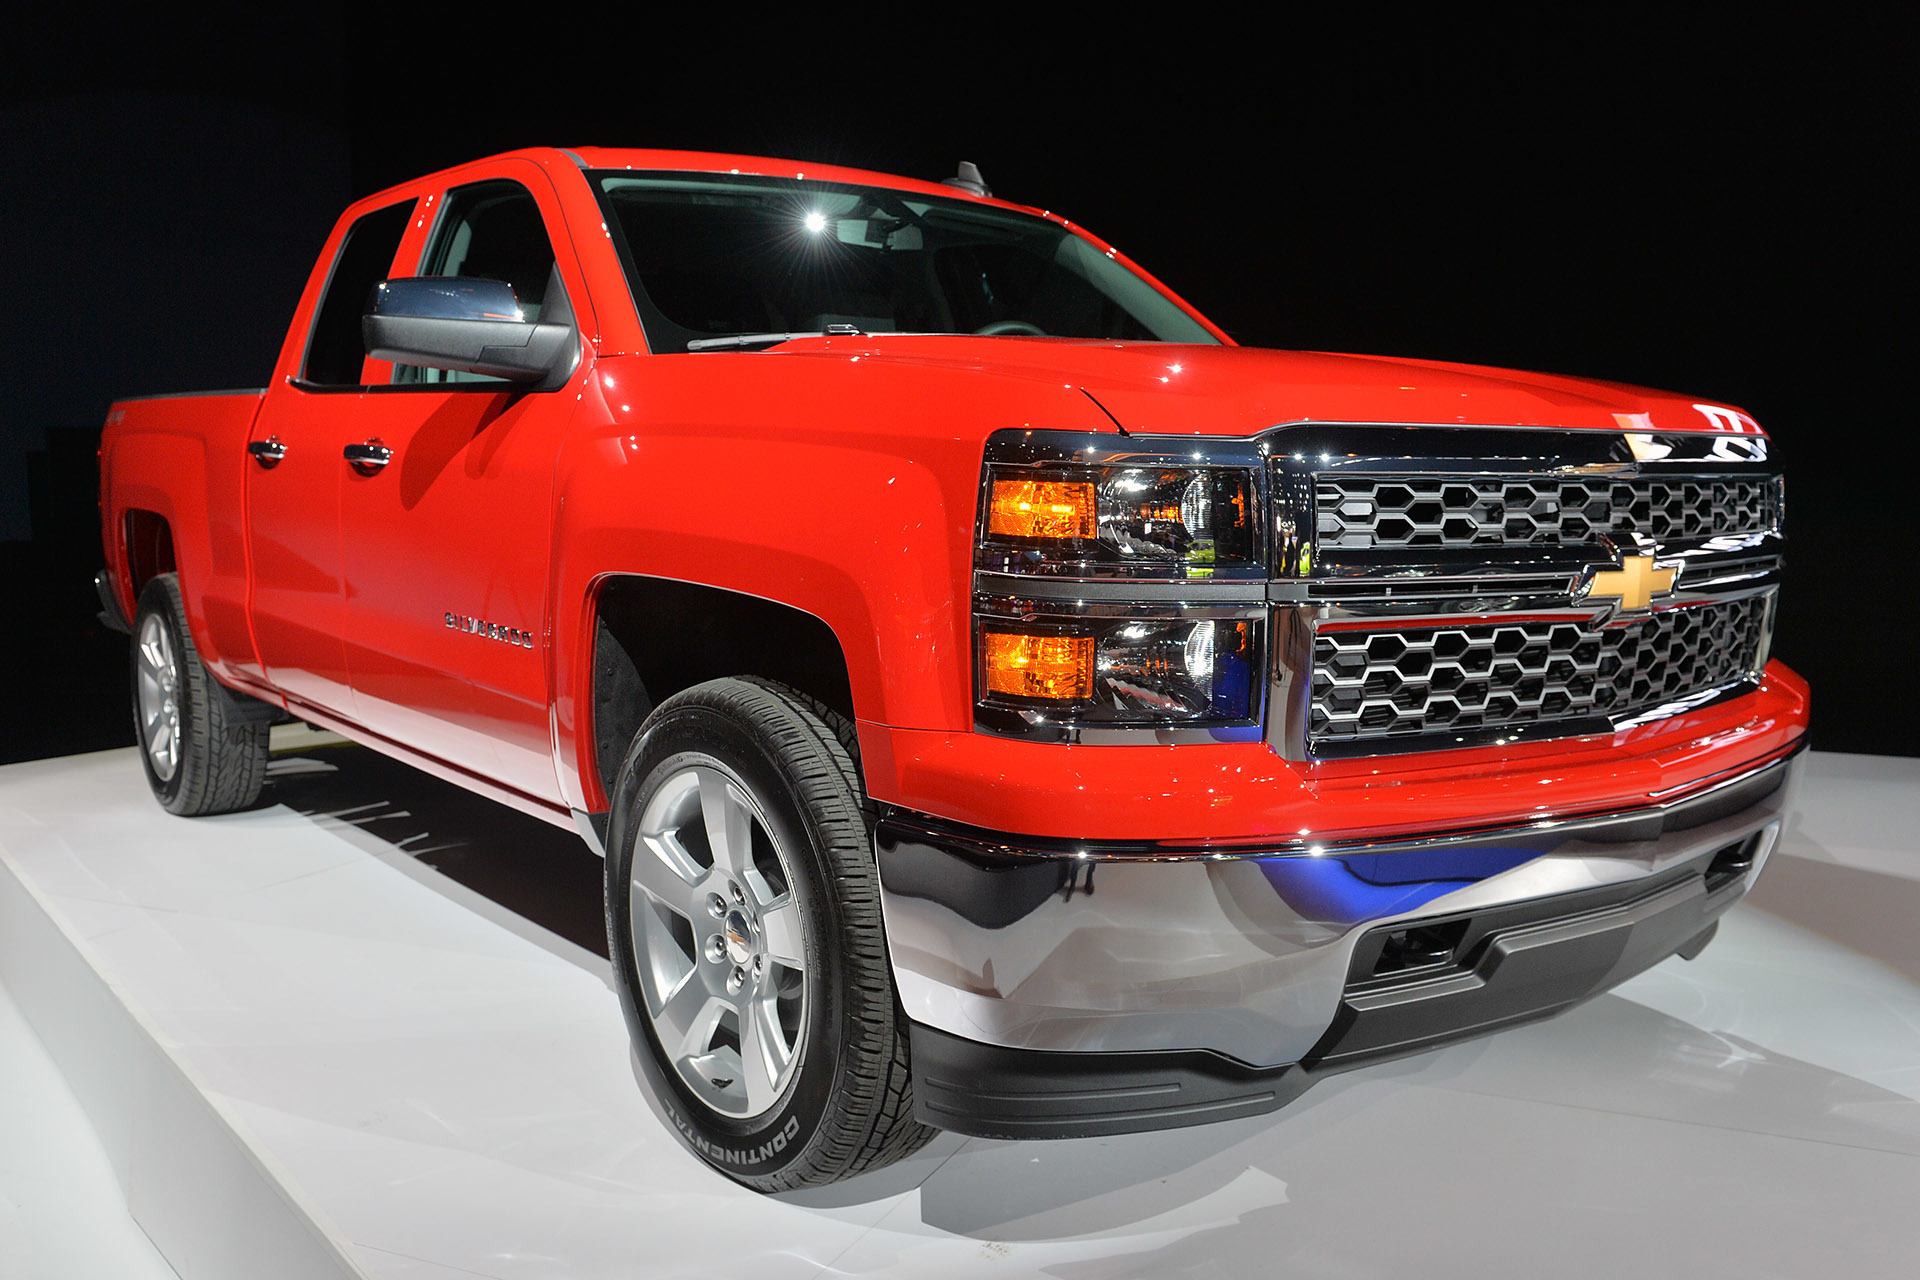 2015 chevrolet silverado custom chicago 2015 photo gallery autoblog. Black Bedroom Furniture Sets. Home Design Ideas